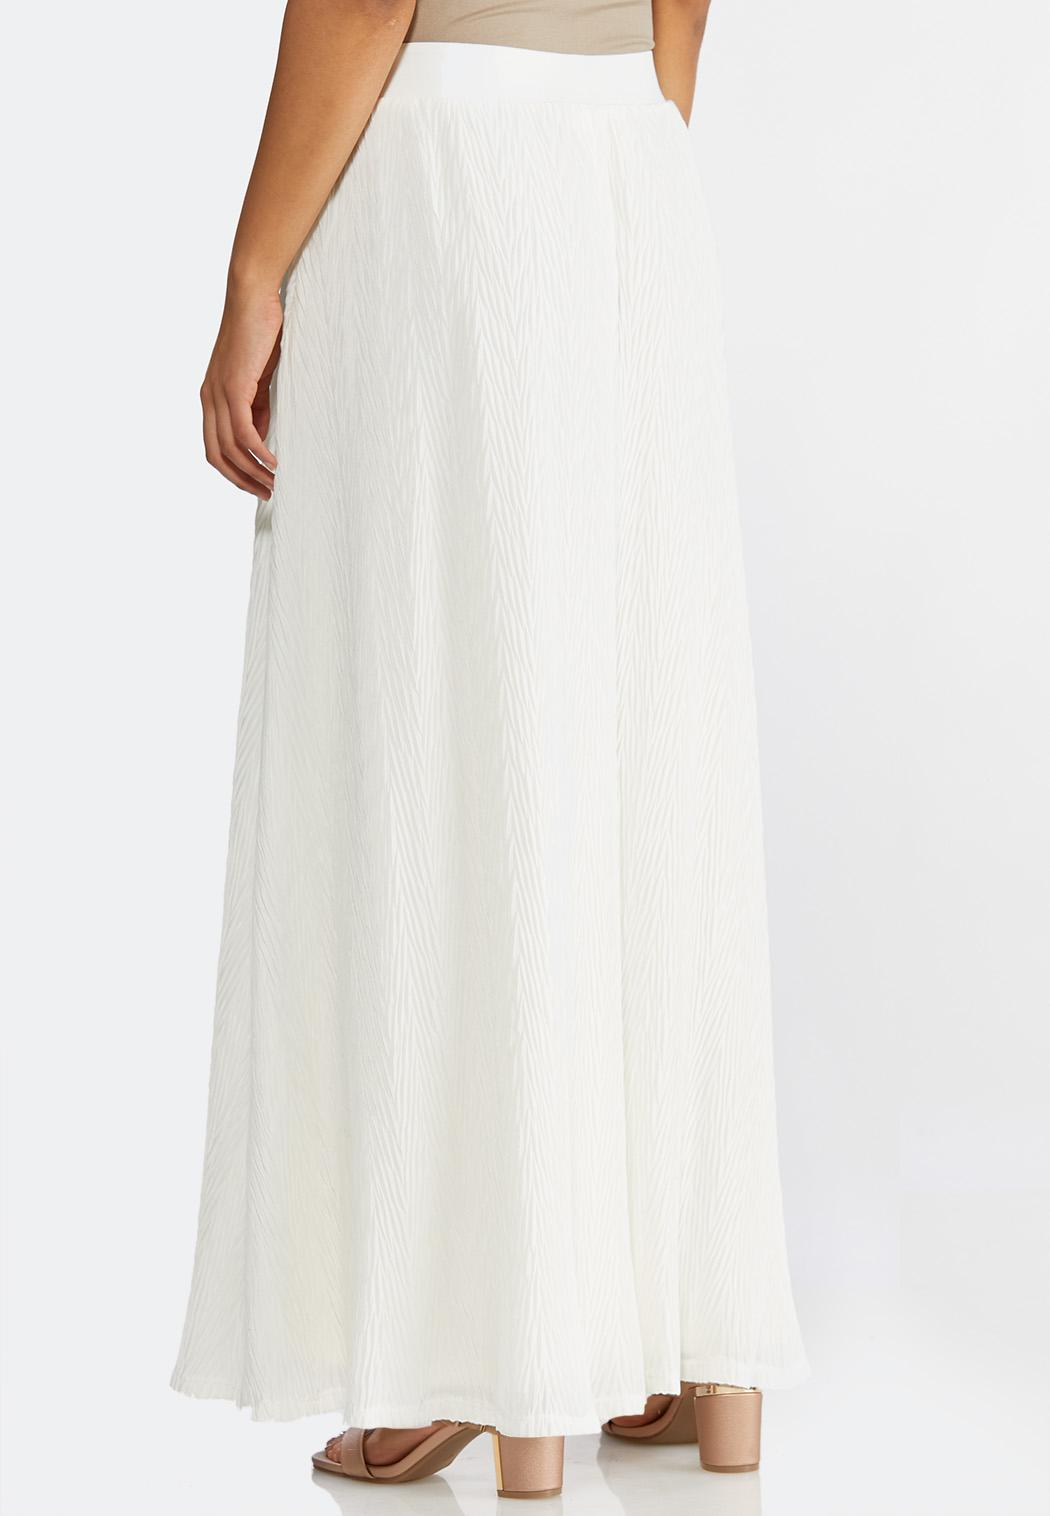 30d80f4975 Plus Size Crinkled Ivory Maxi Skirt alternate view ...